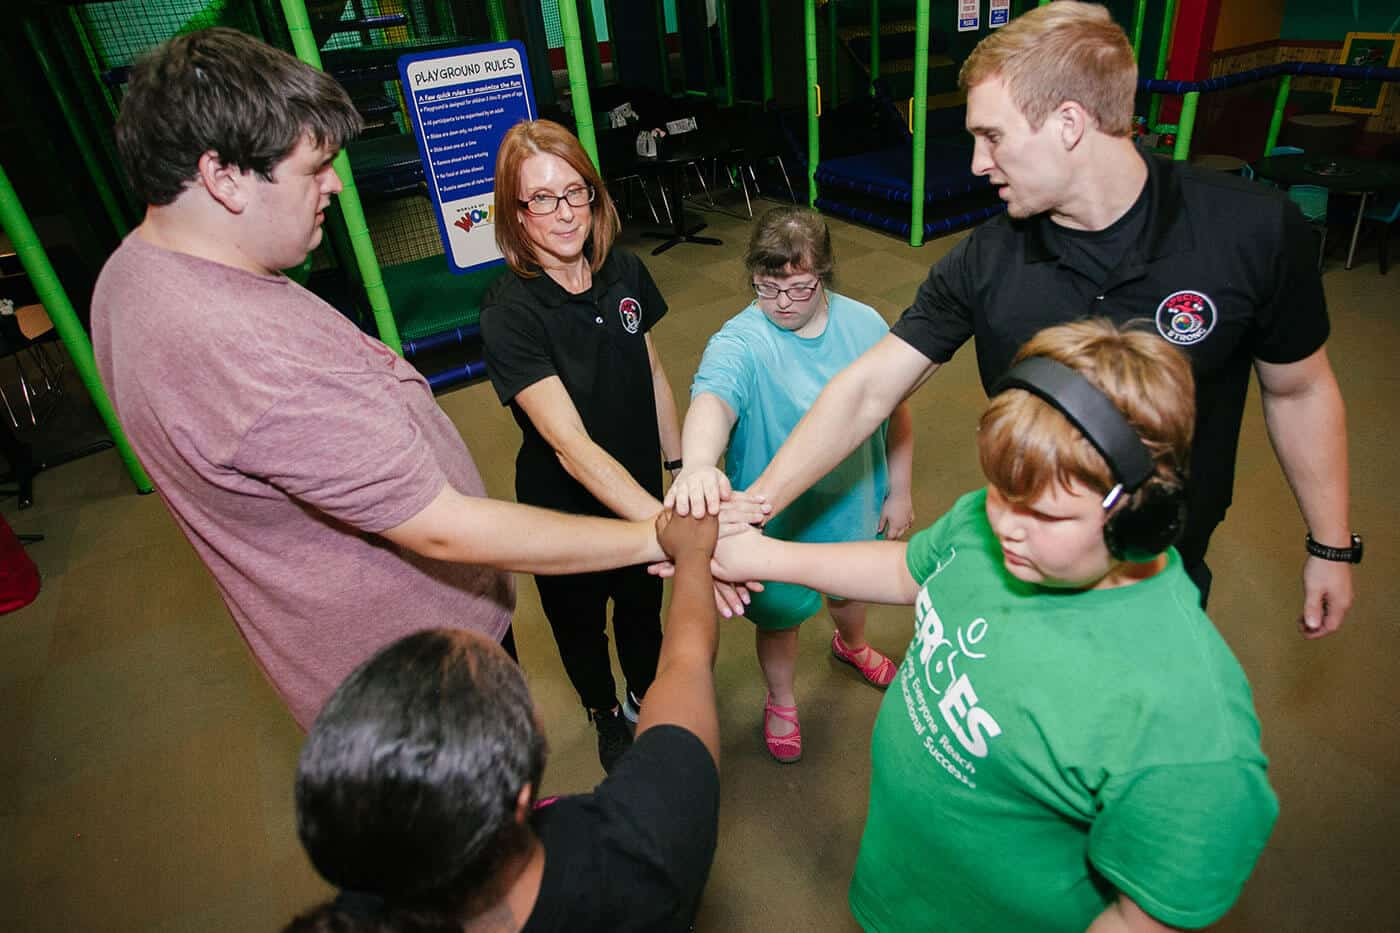 team-break-out-boot-camp-down-syndrome-special-needs-autism-exercise